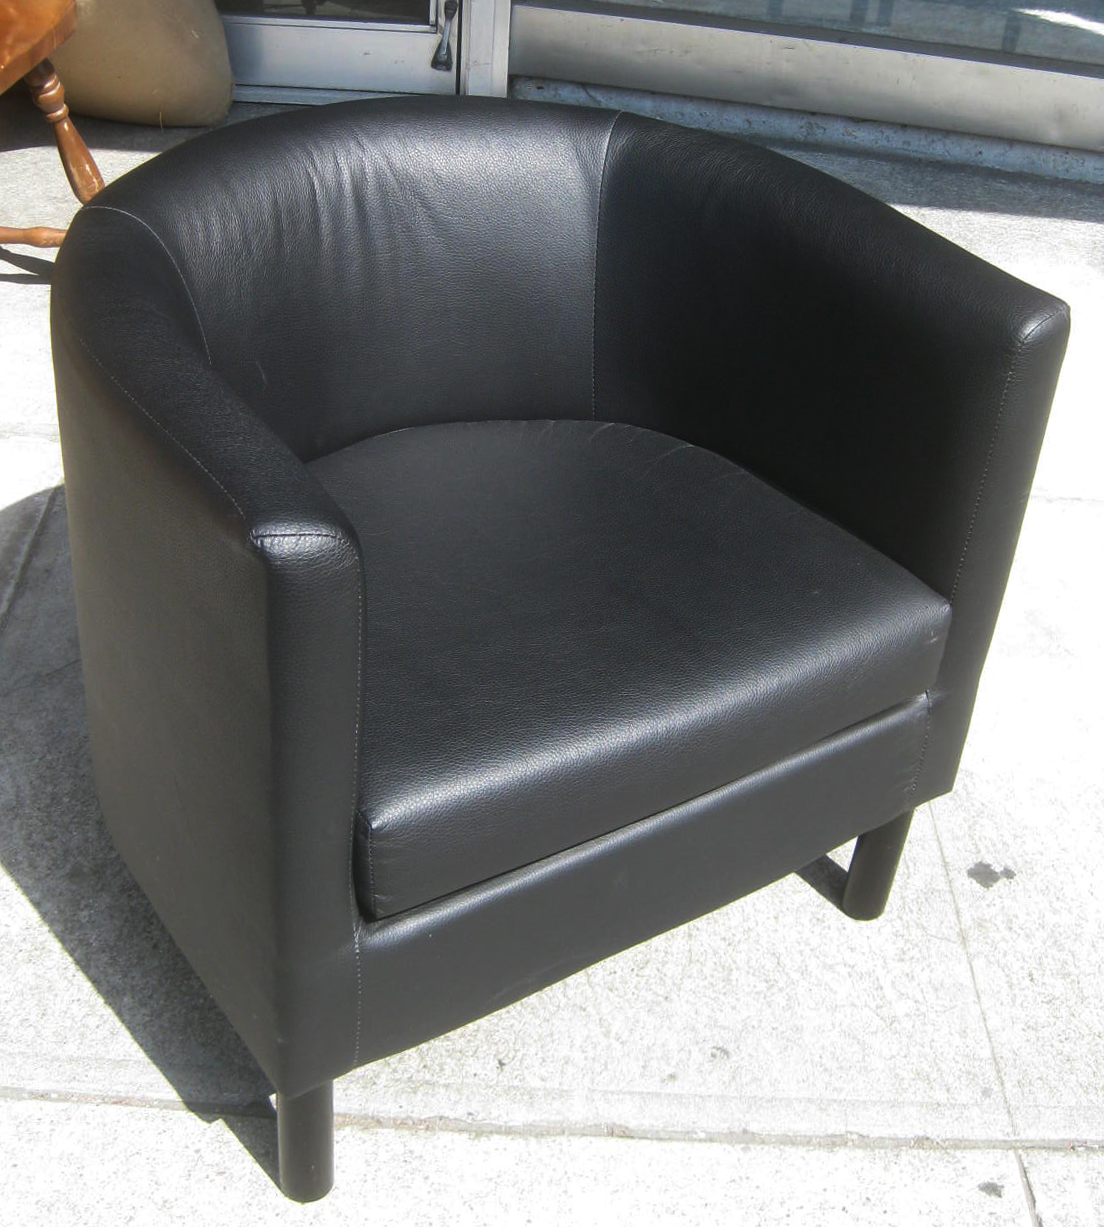 UHURU FURNITURE & COLLECTIBLES: SOLD - Ikea Leather Chair ...